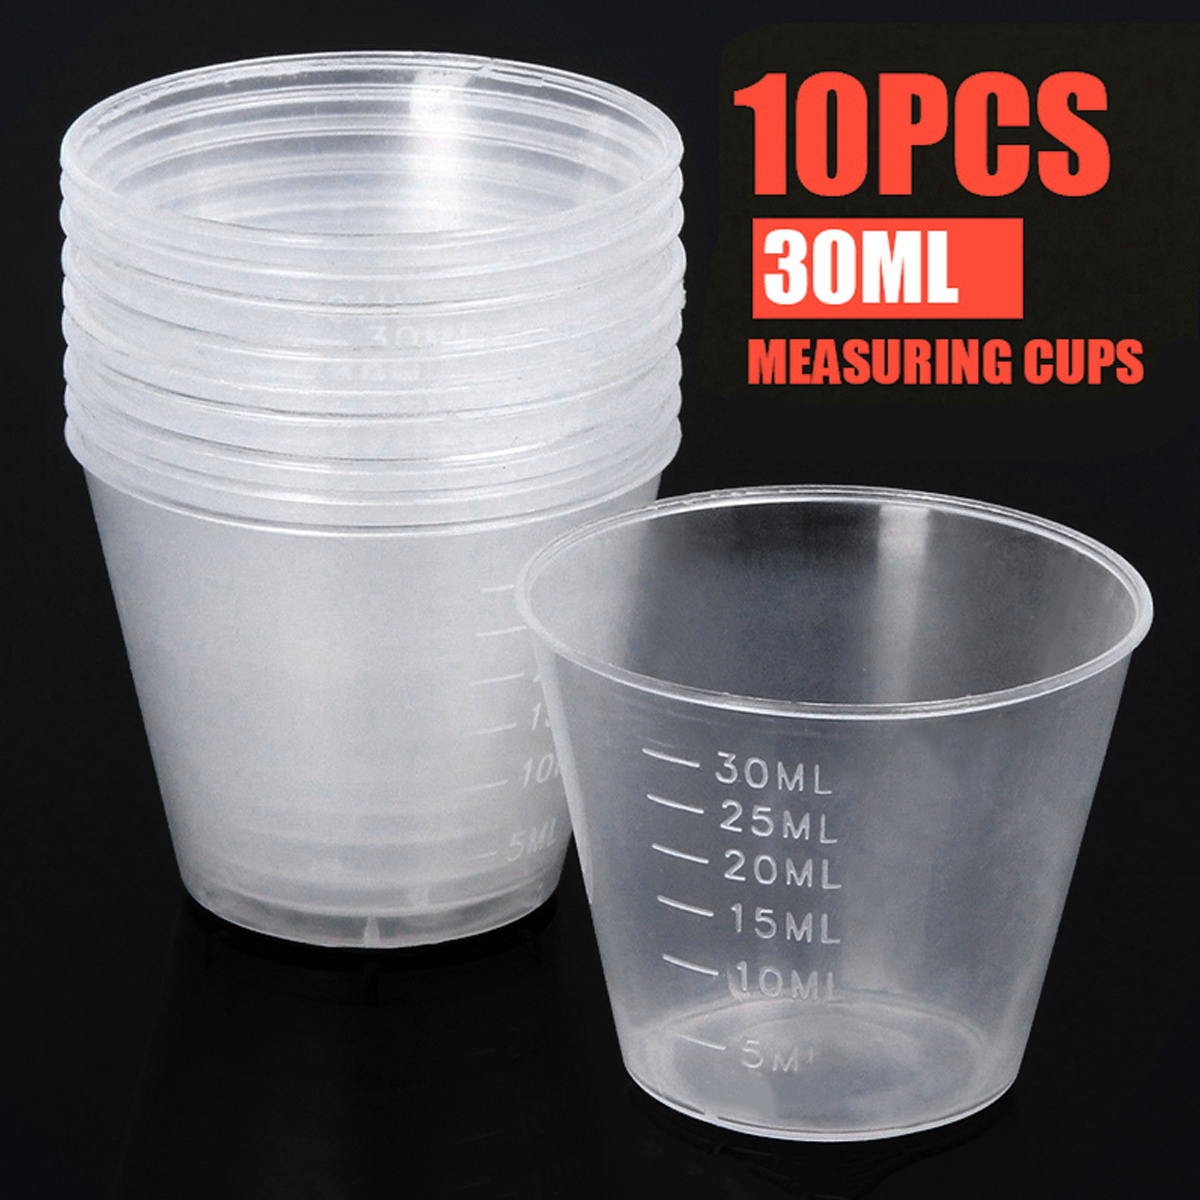 10pcs/lot 30ml Disposable Plastic Clear Measuring Cups Liquid Container Medicine Cups Home Kitchen Gadget Tool Measuring Cups